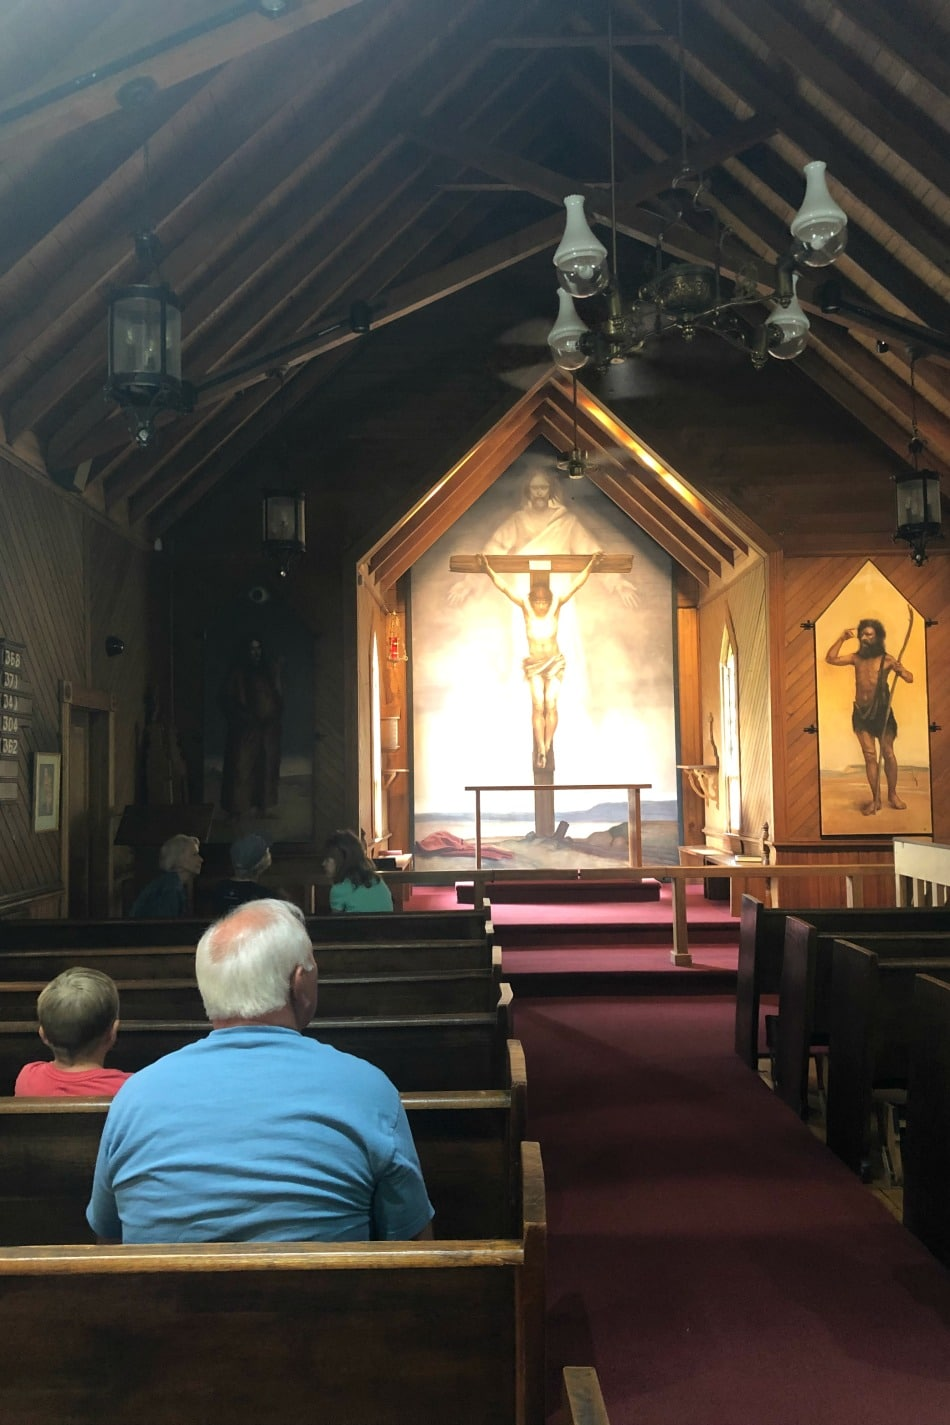 Visiting The Frescos in West Jefferson, NC | Growing Up Herbal | We finally made it to see the fresco paintings housed in a couple of old Episcopal churches in West Jefferson, North Carolina for our Michaelangelo artist study!